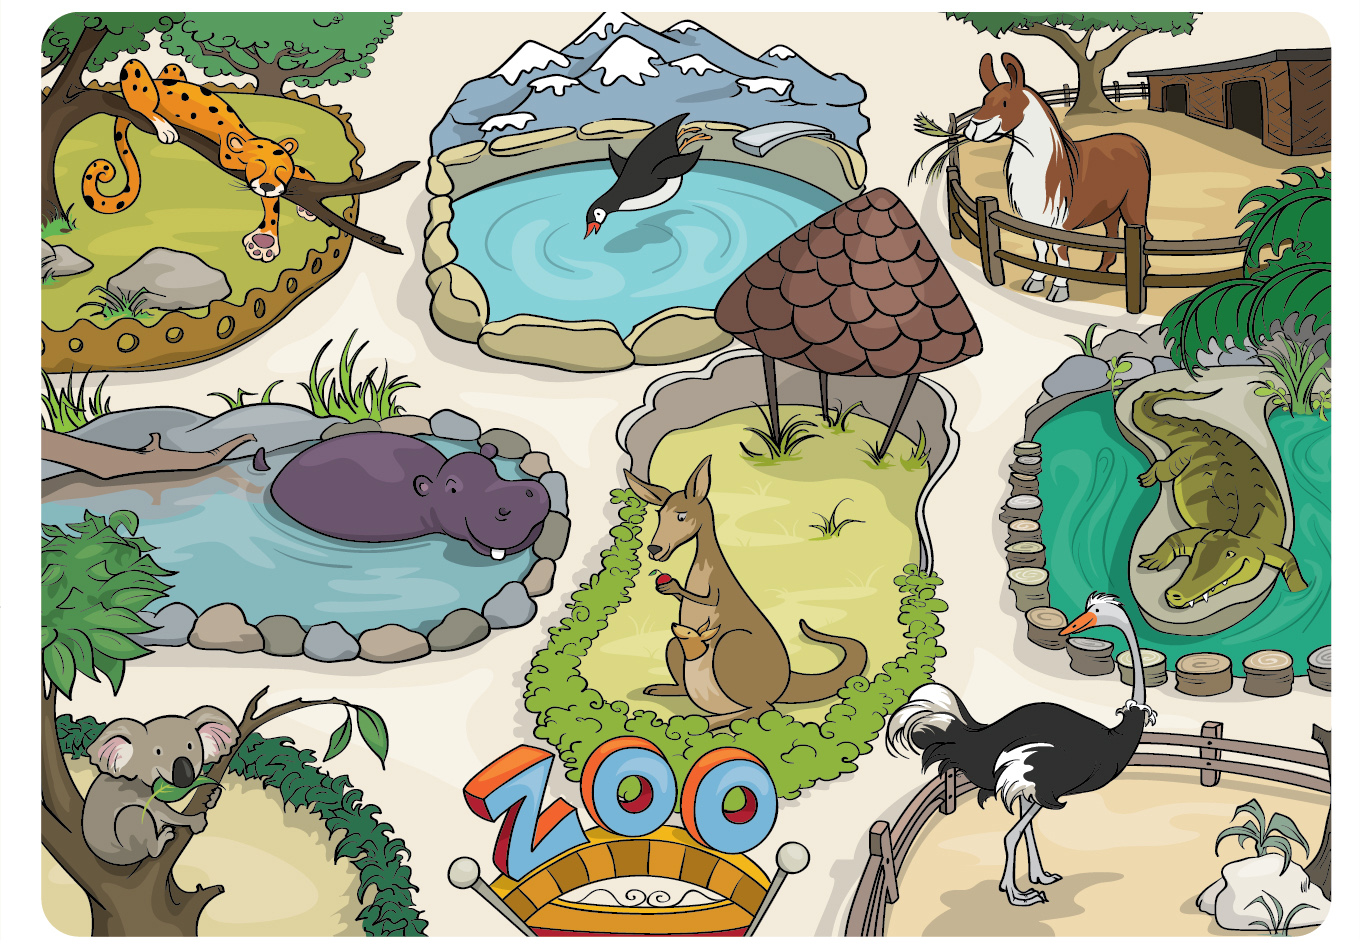 Zoo clipart zoo map Legend below design and steps